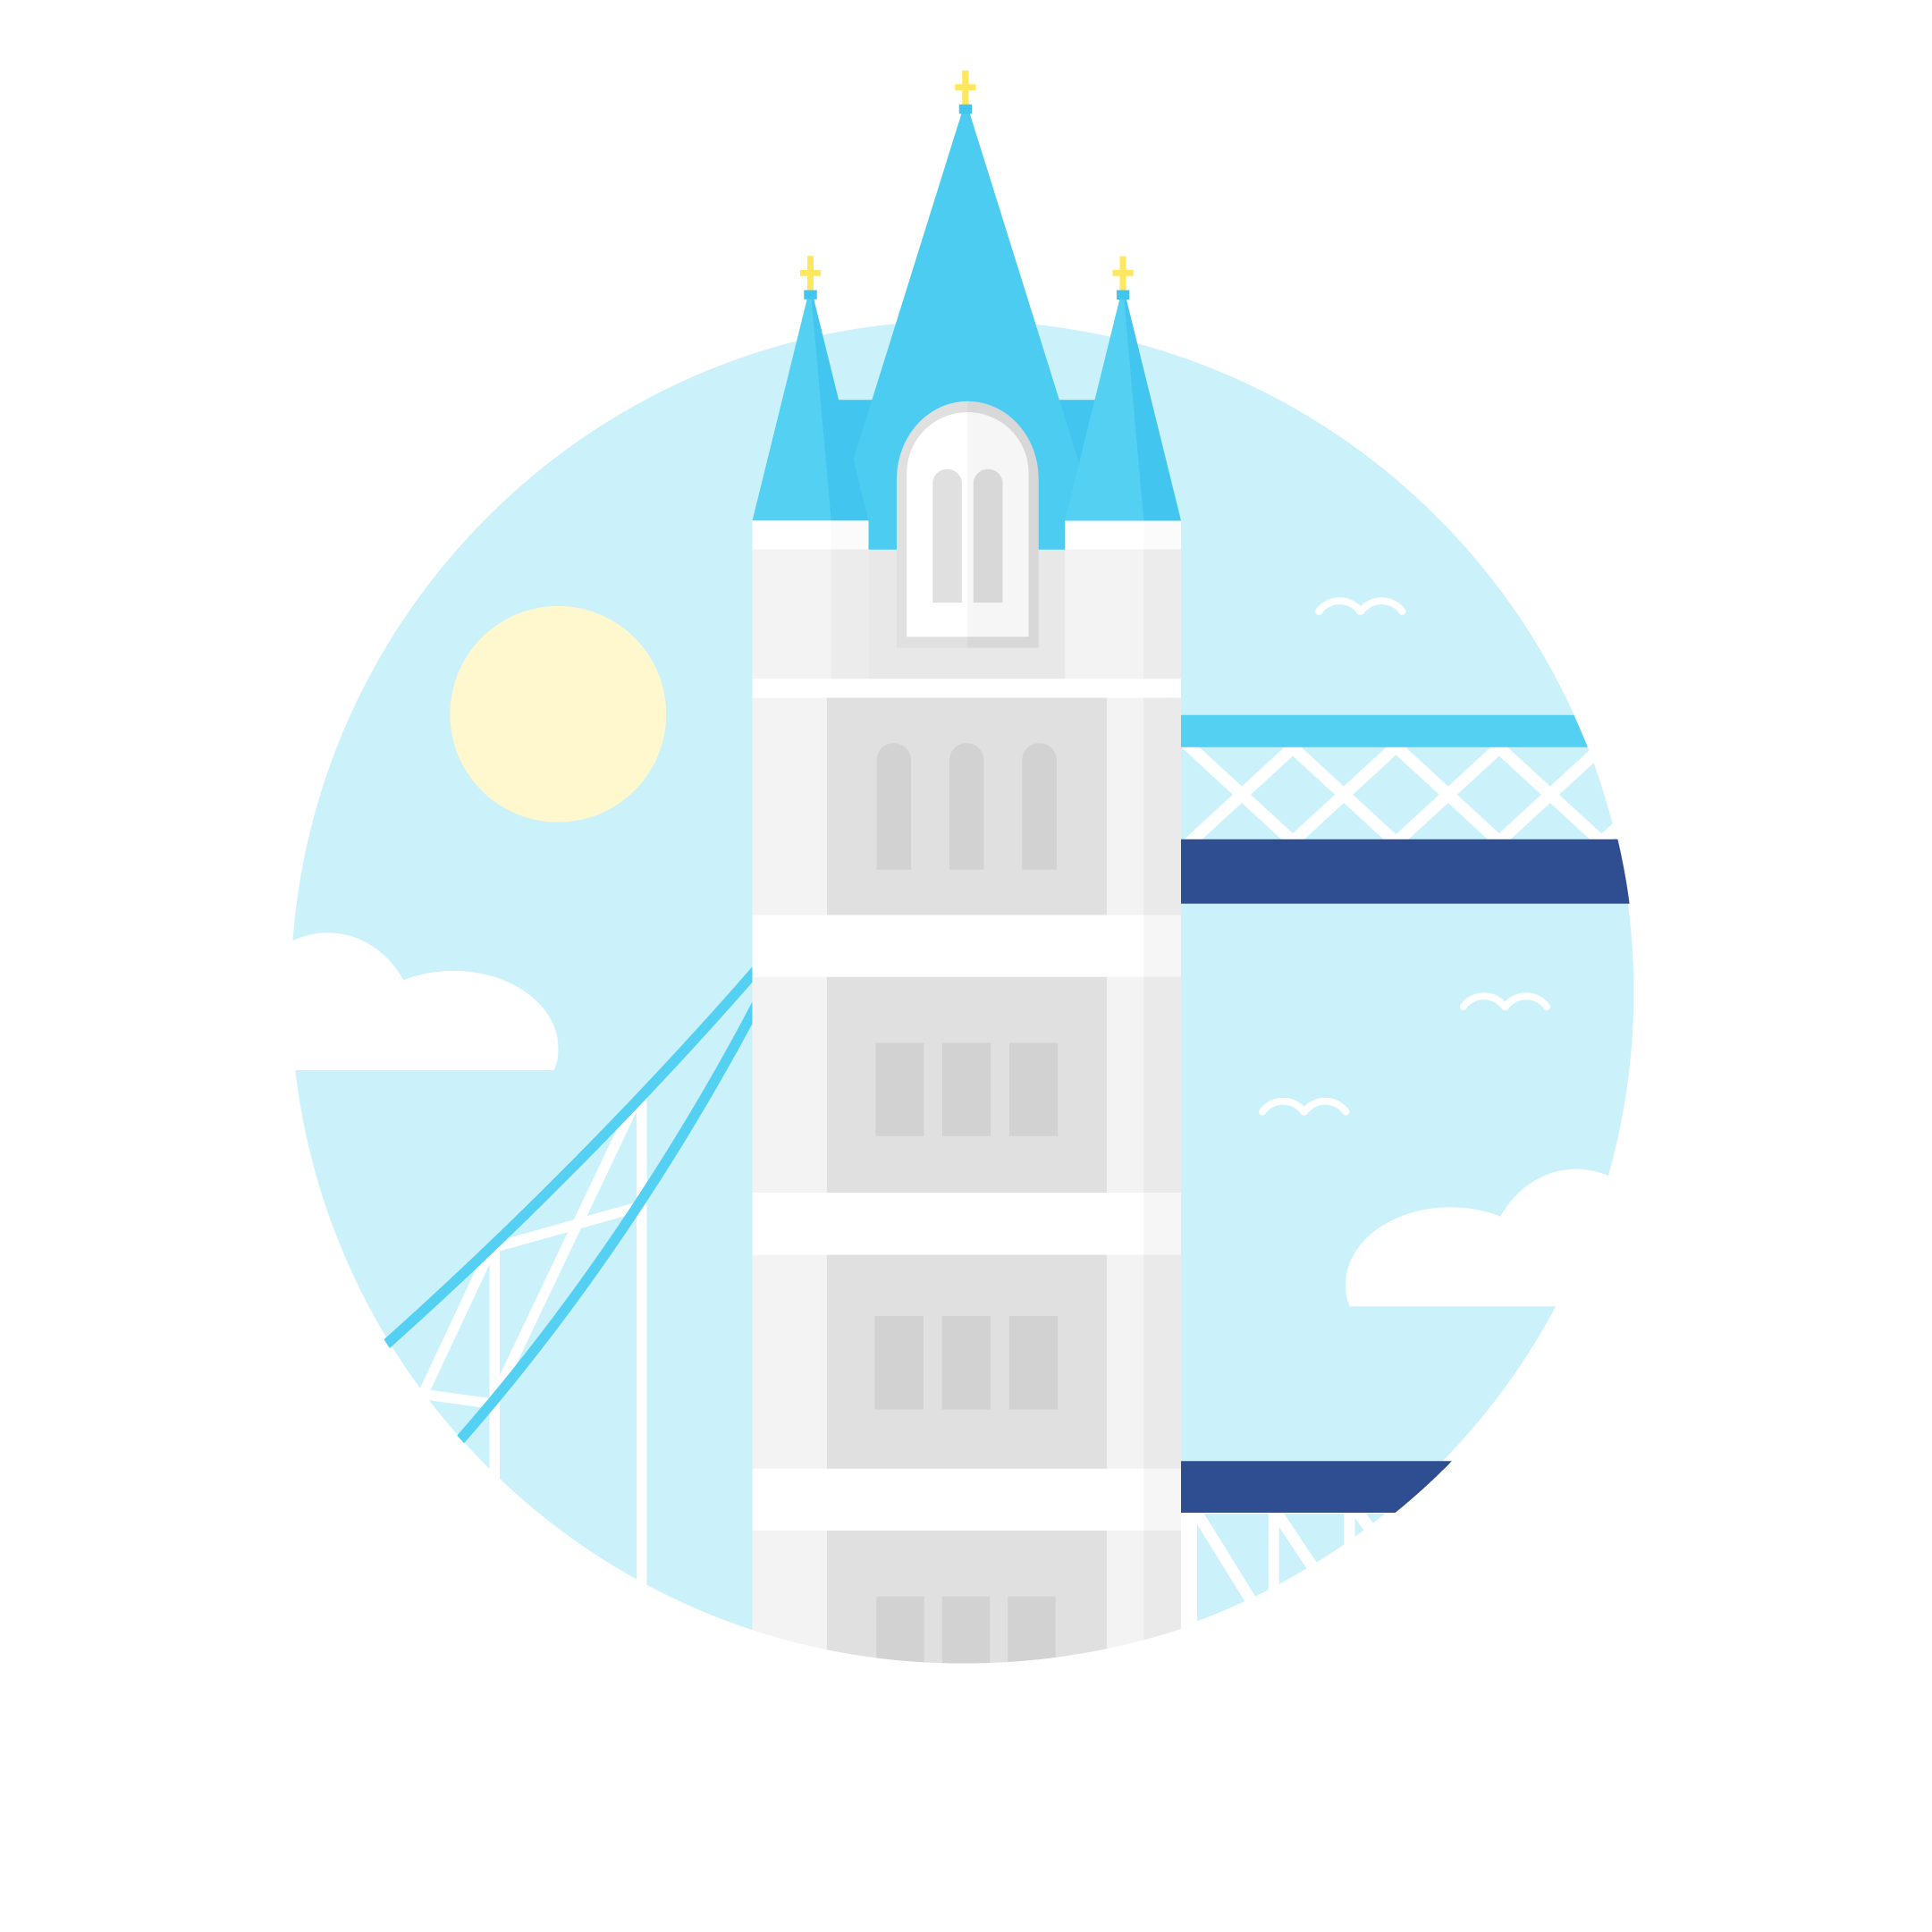 Vector illustration of the Tower Bridge in London, the UK in a blue circle with clouds & sun in flat design style